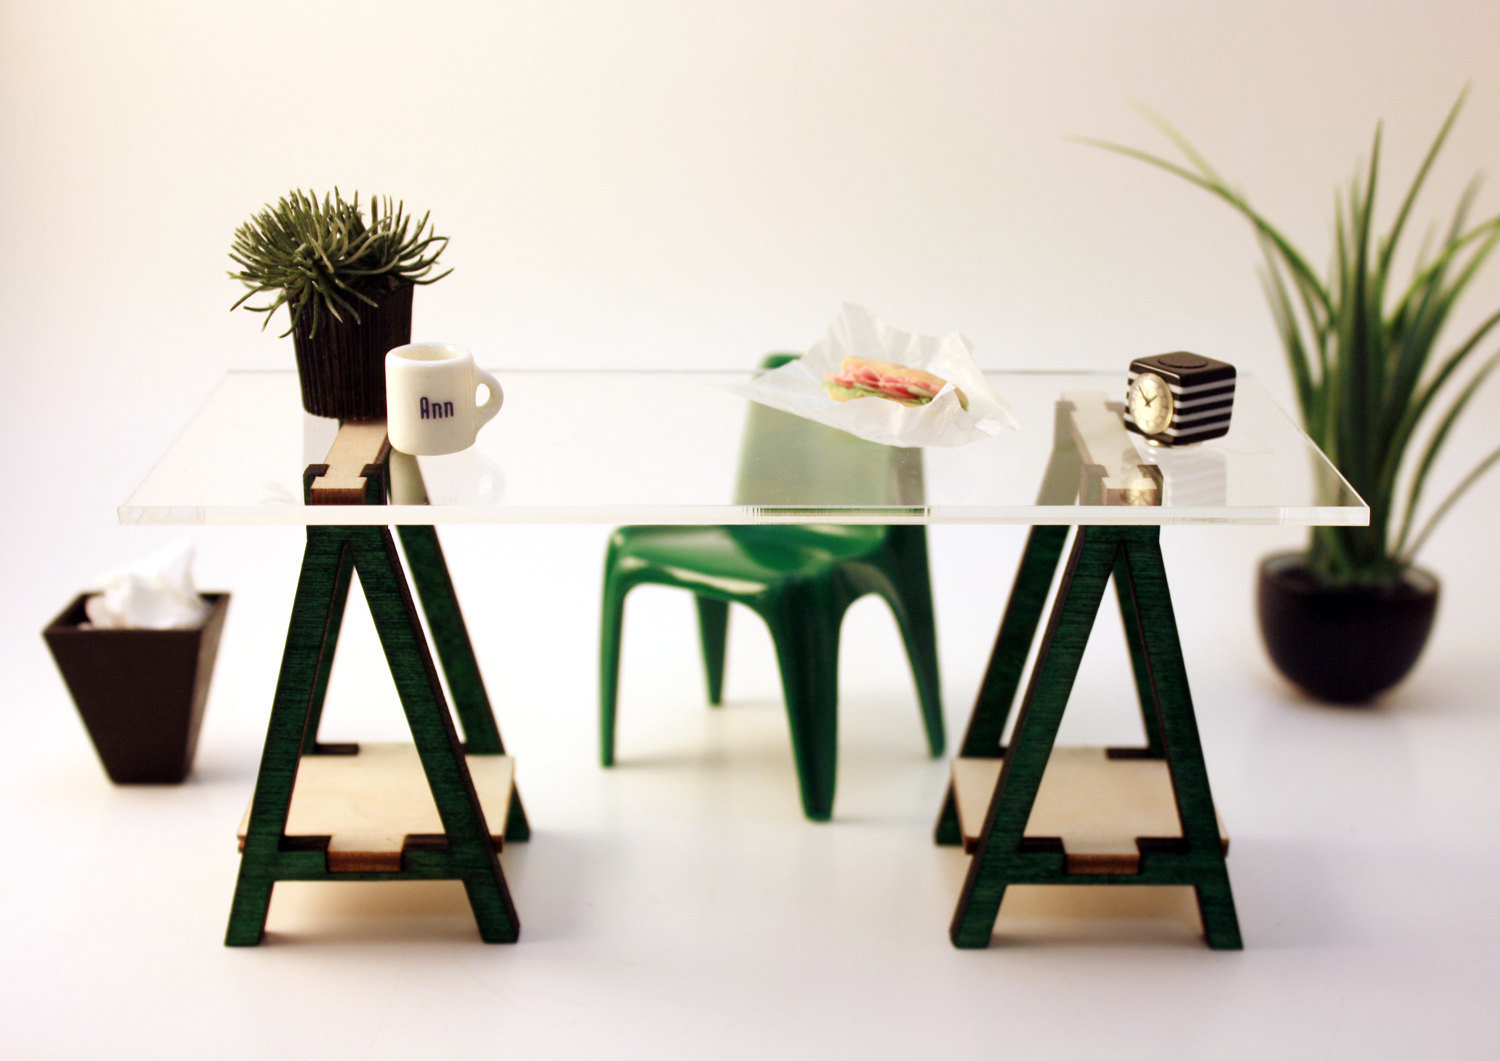 Buy 2 Get 1 Free SALE Miniature IKEA Inspired VIKA Desk Kit for 1:12 Scale Modern Dollhouse in Wood